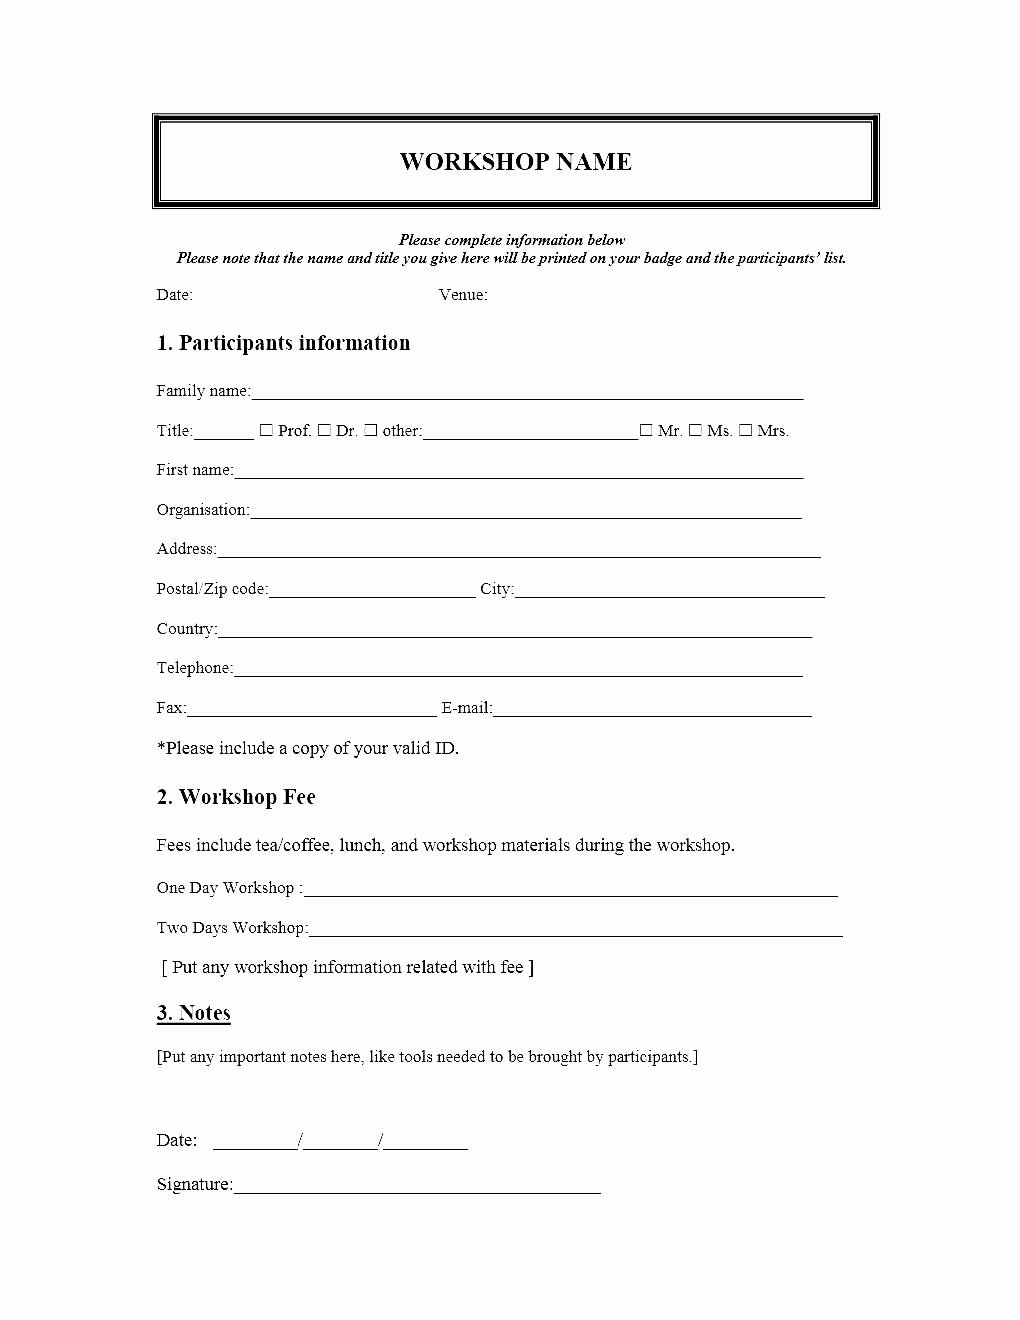 Free Registration forms Template Unique event Registration form Template Microsoft Word